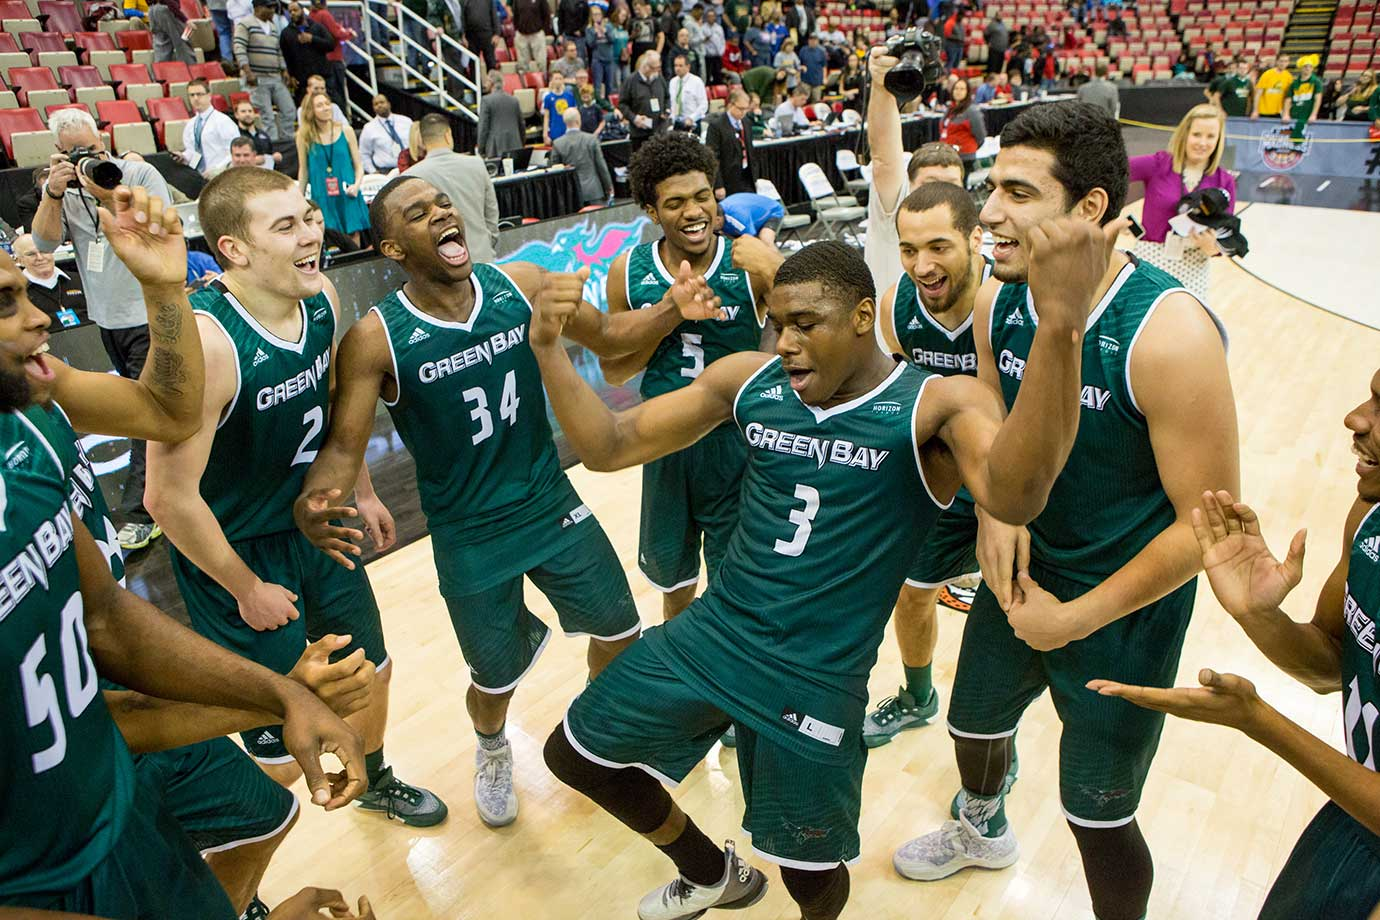 Here are some of the images that caught our eye on the sports night of March 8, starting with Green Bay guard Khalil Small leading his teammates in a cheer after winning the Horizon League tournament.